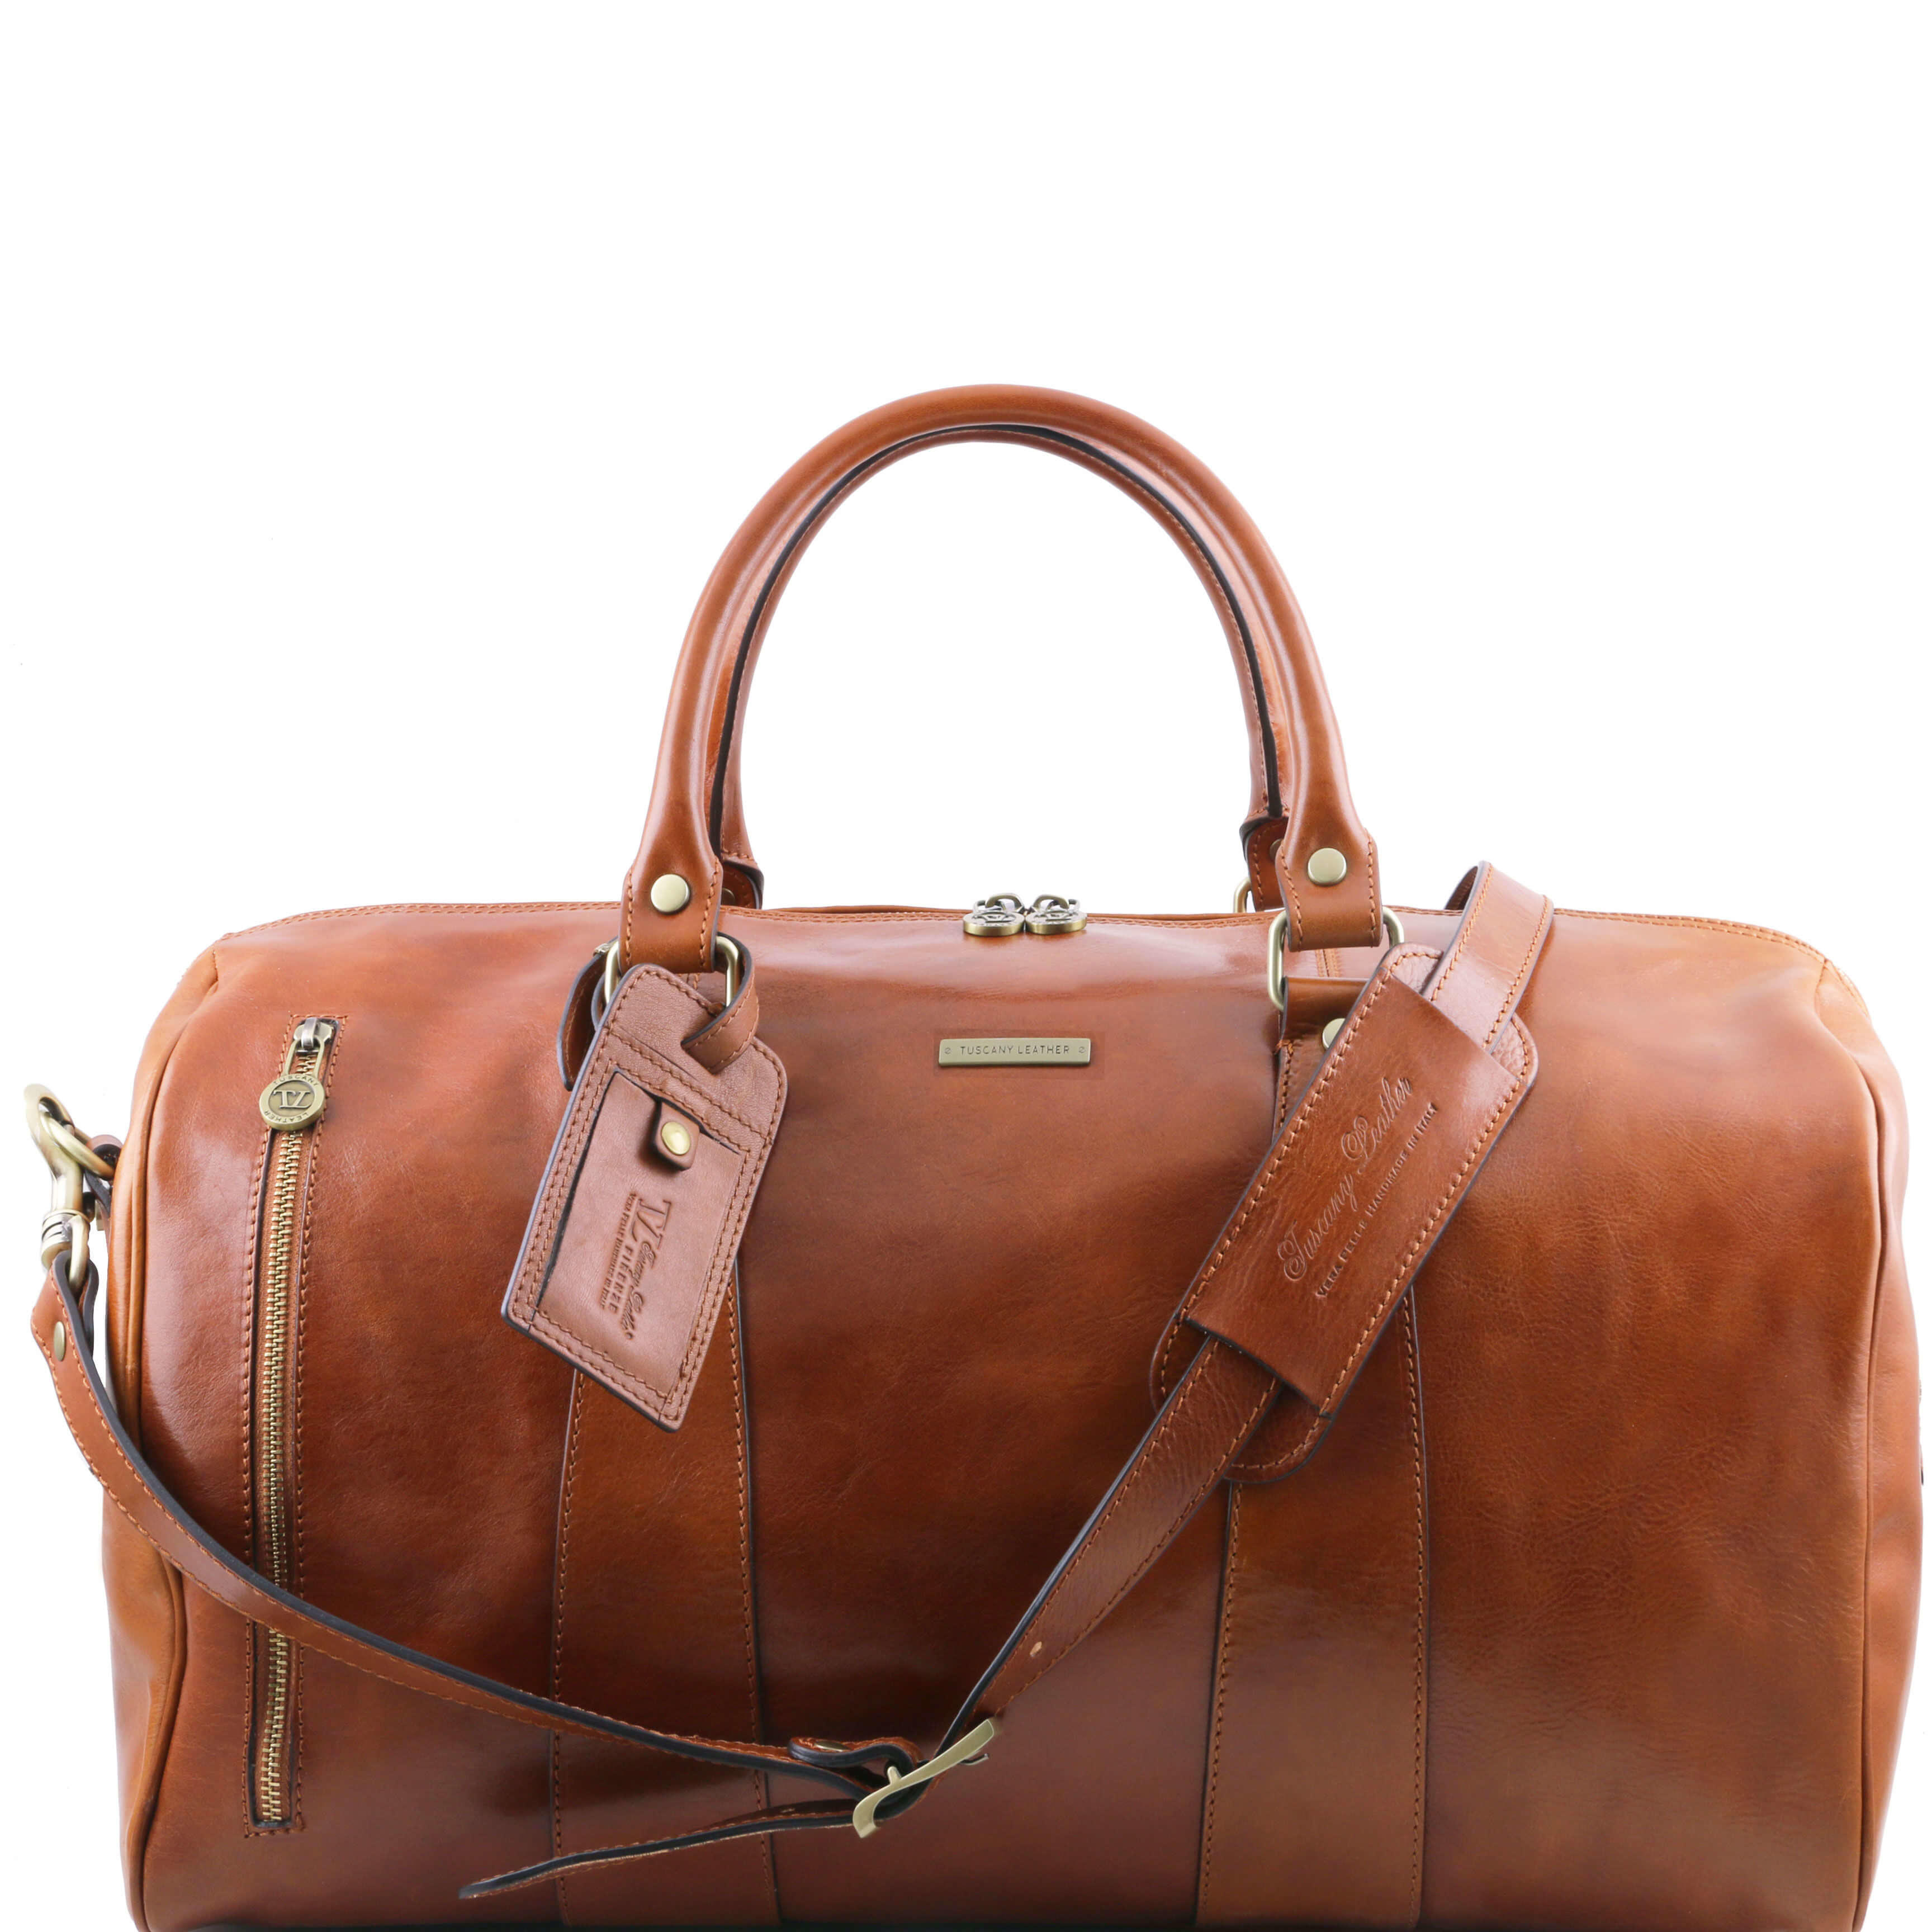 TL141217 Large Leather Voyager Holdall-Travel-Luggage-Duffel Bag